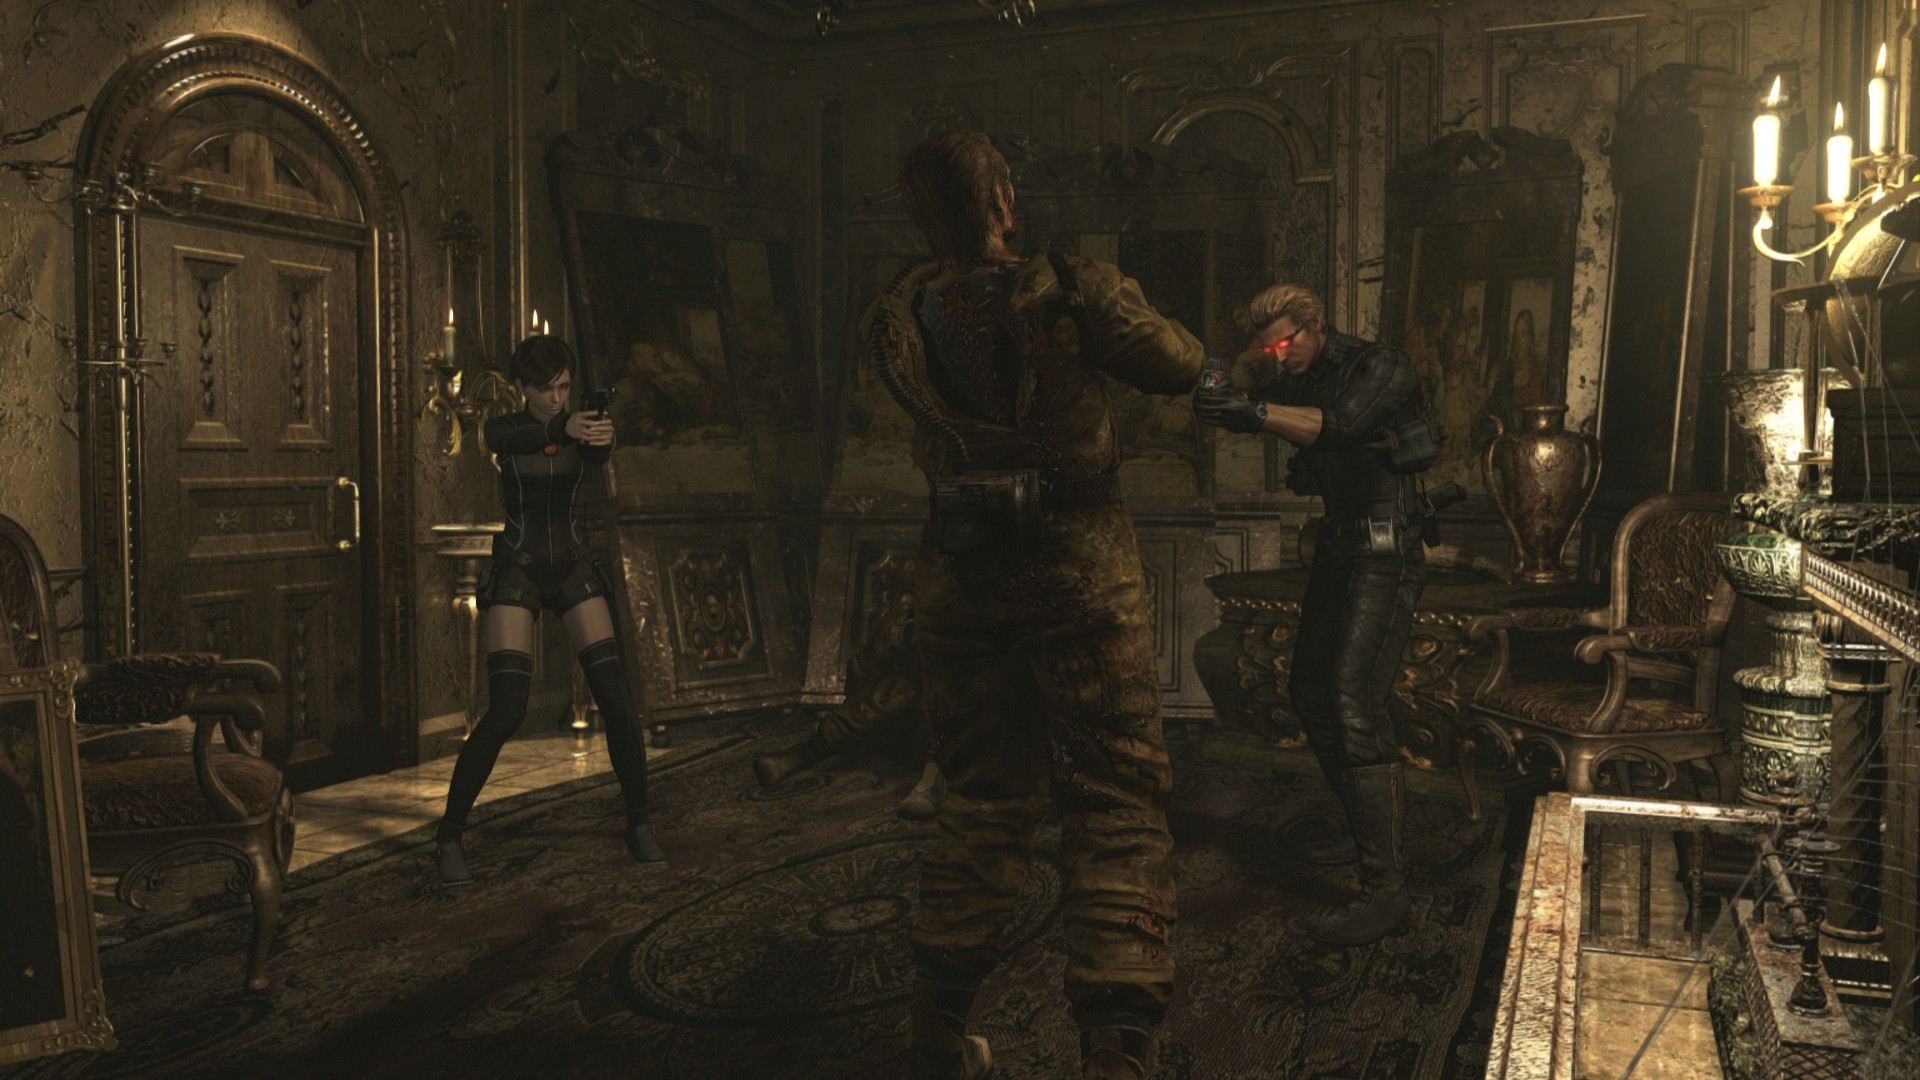 Check out Capcom's gameplay demonstration of Resident Evil 0 HD's Wesker Mode